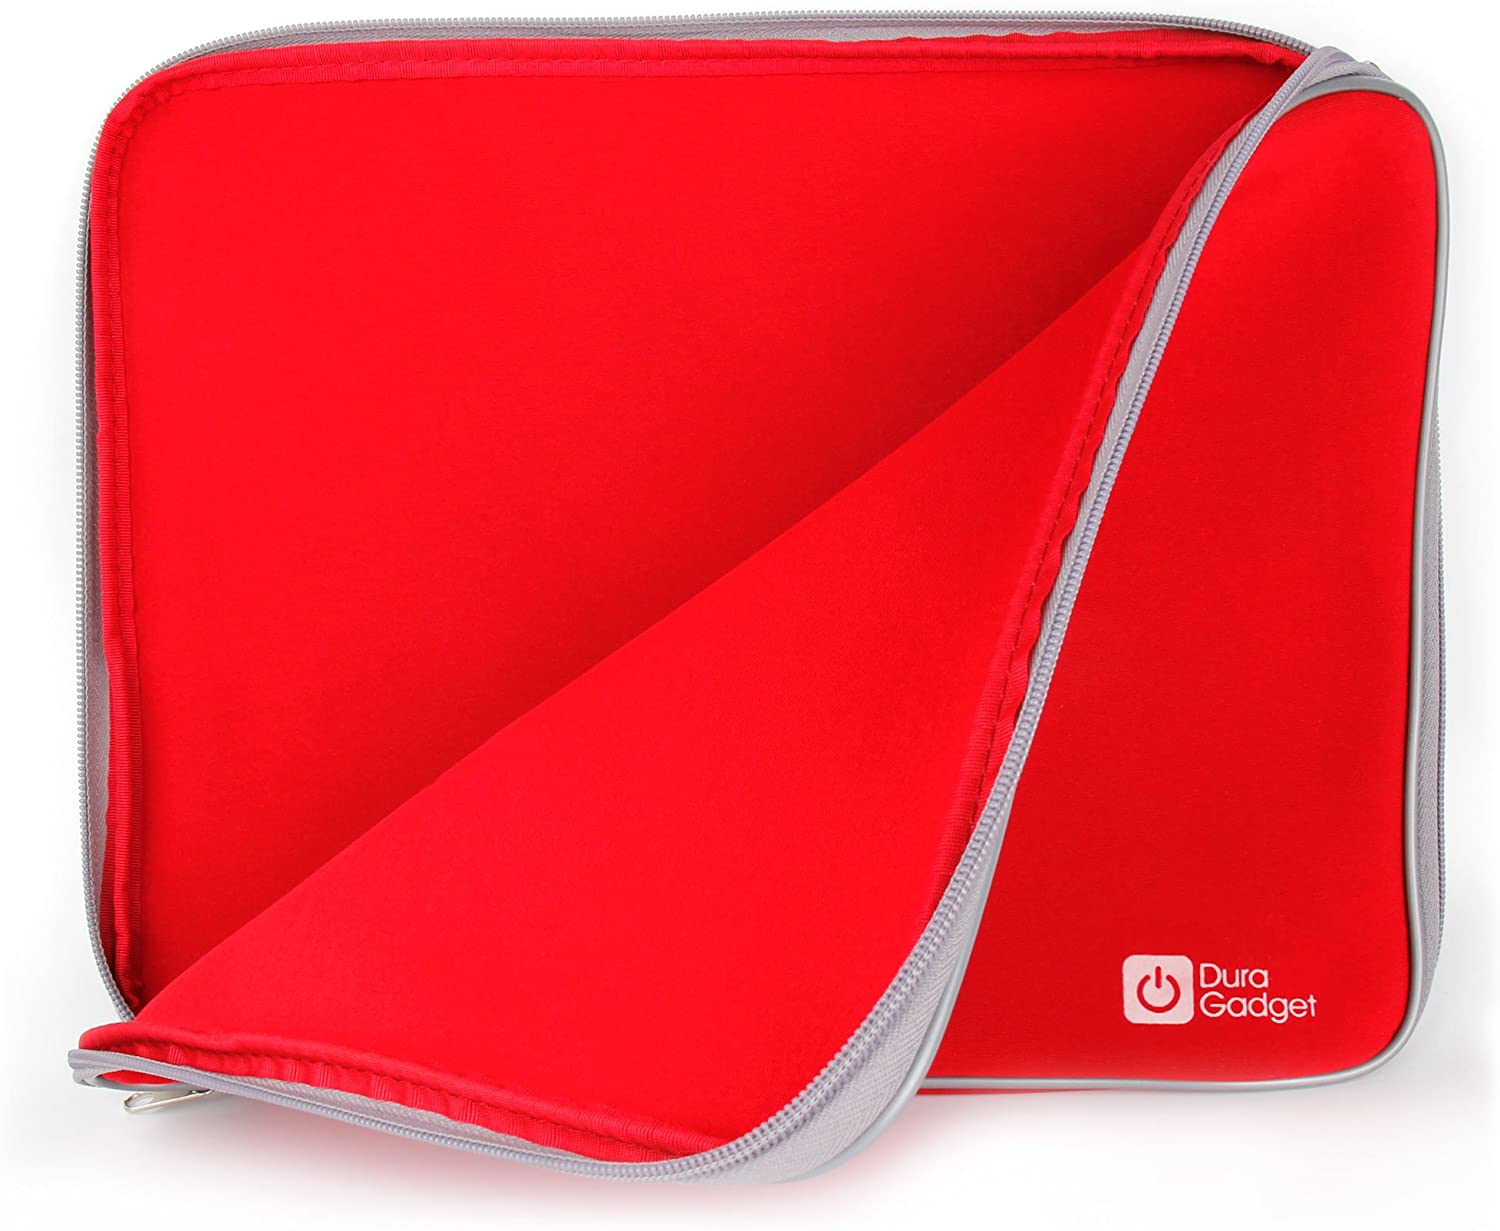 DURAGADGET Red Neoprene Laptop Sleeve Case - Compatible with The Acer Chromebook 15 CB5-571-C1DZ